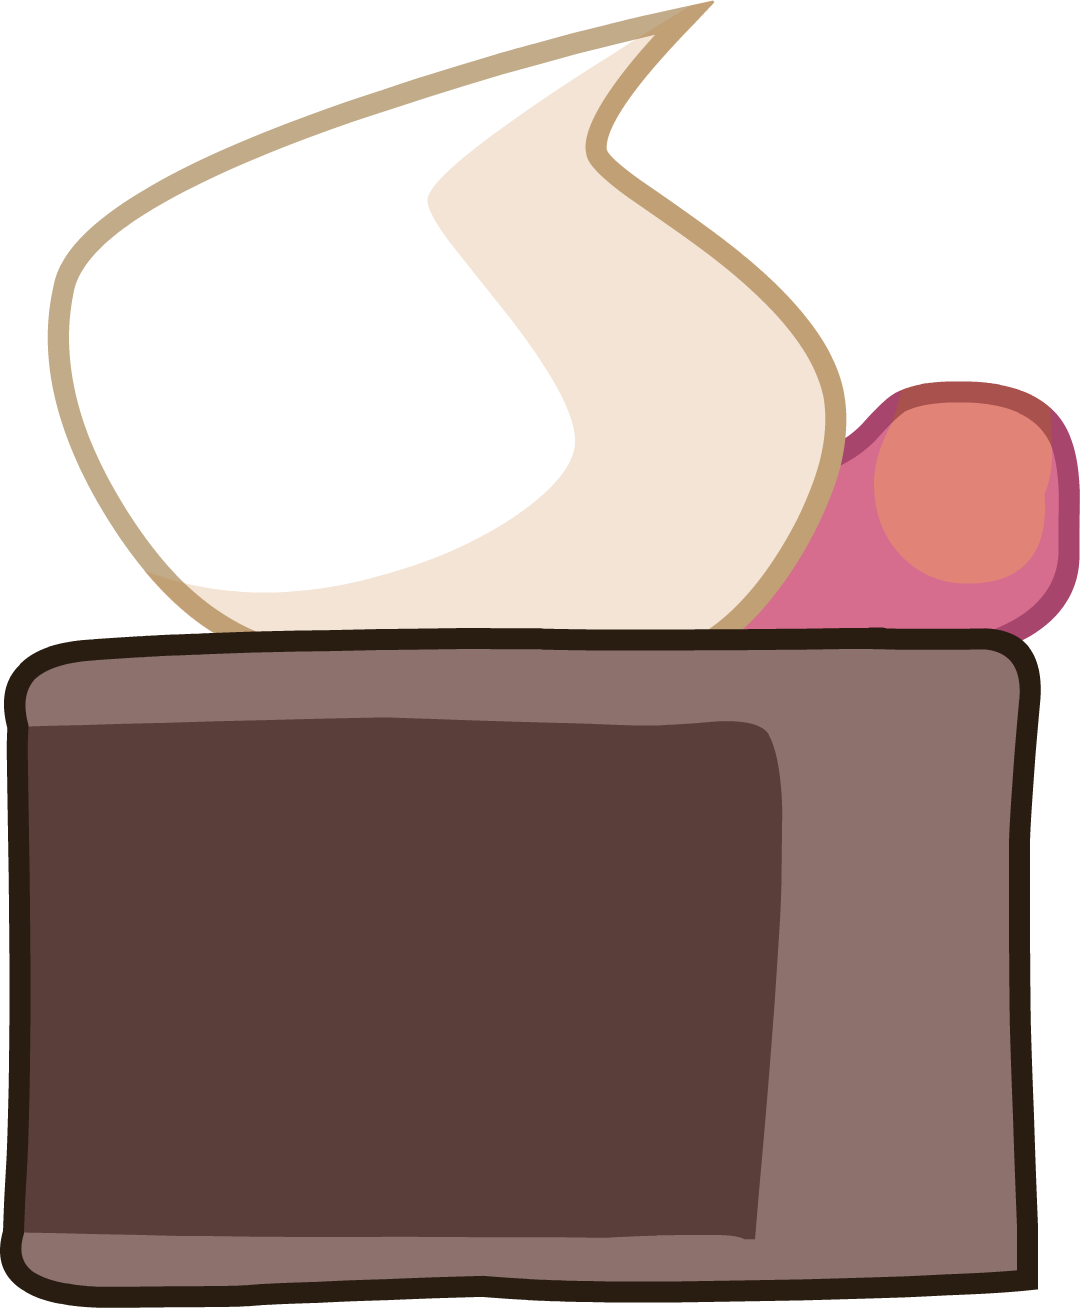 Image cake new remade. Dead clipart body bag